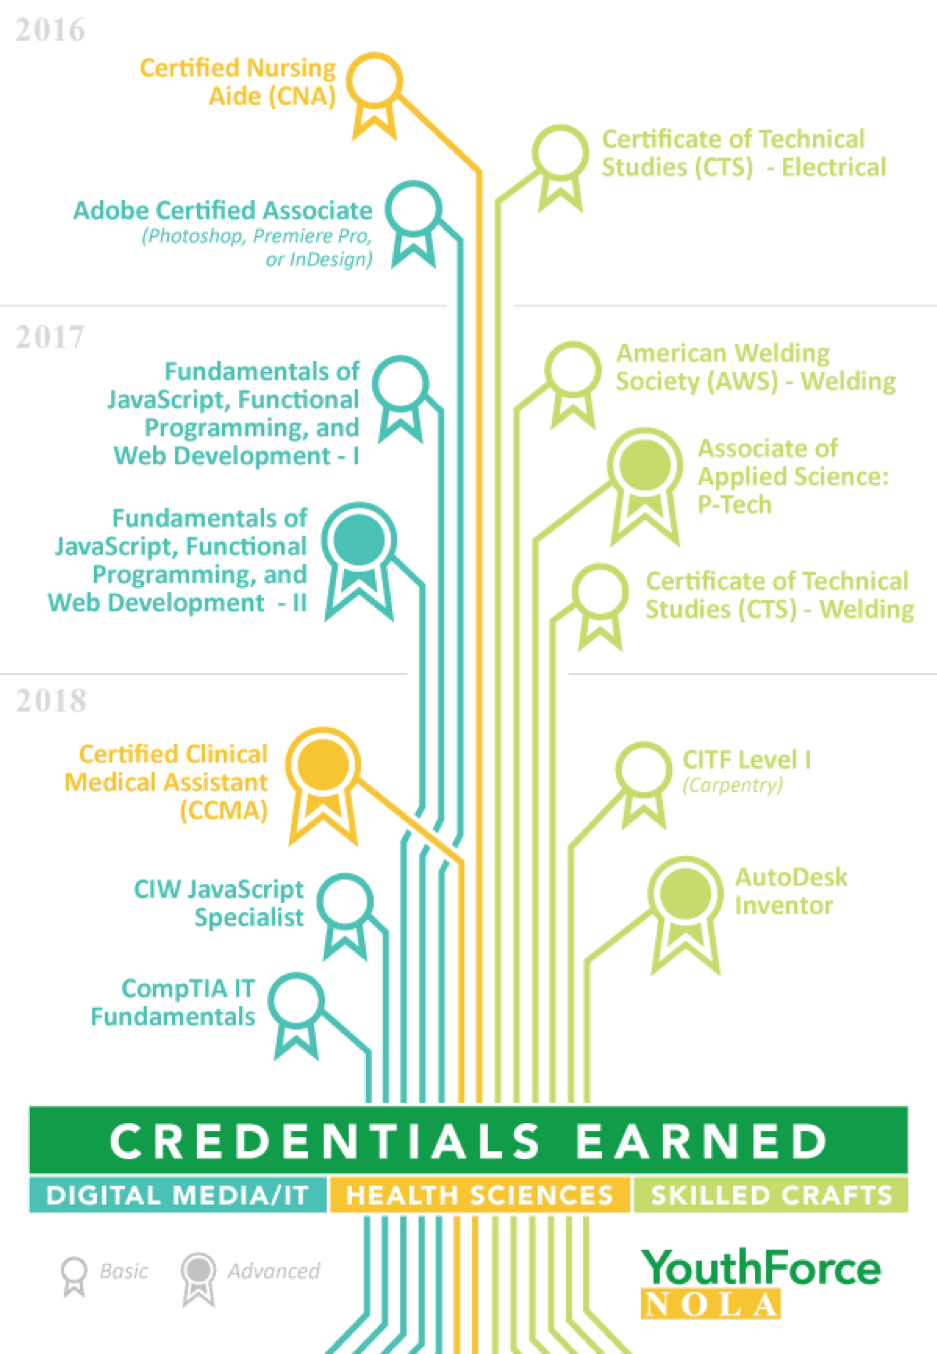 Credentials_Earned_2016-2018.png